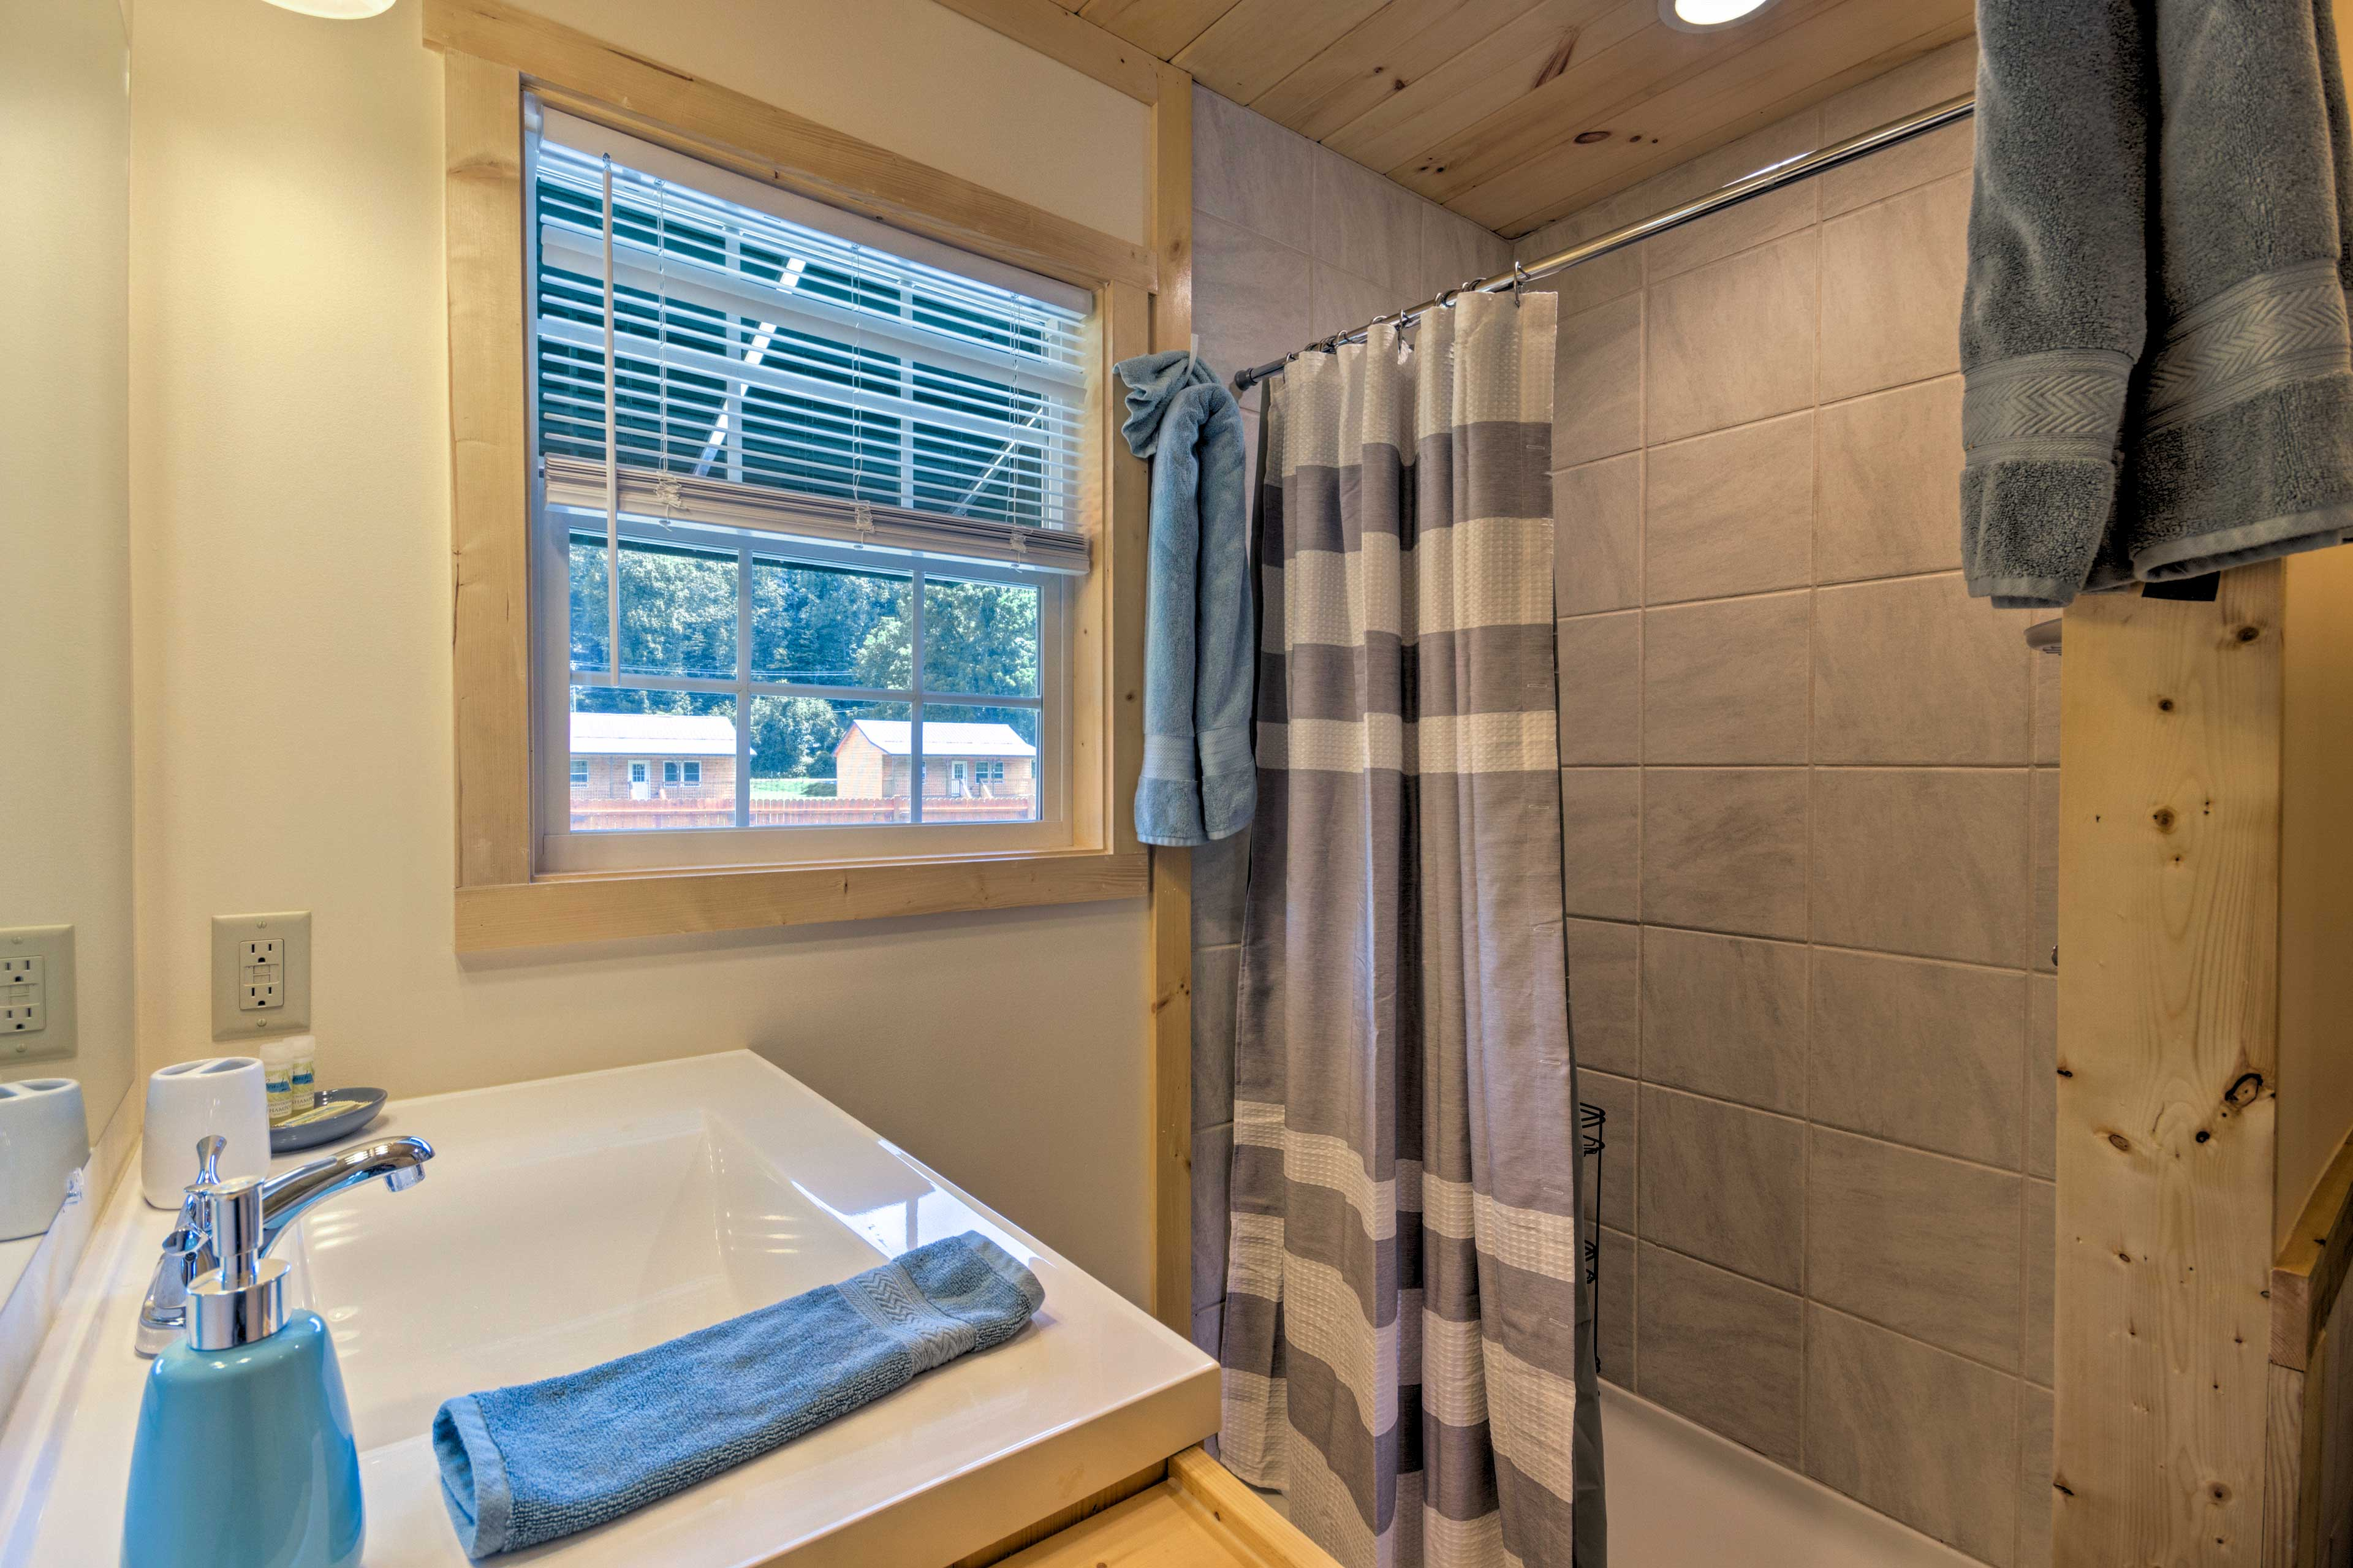 You'll find a walk-in shower in the bathroom.